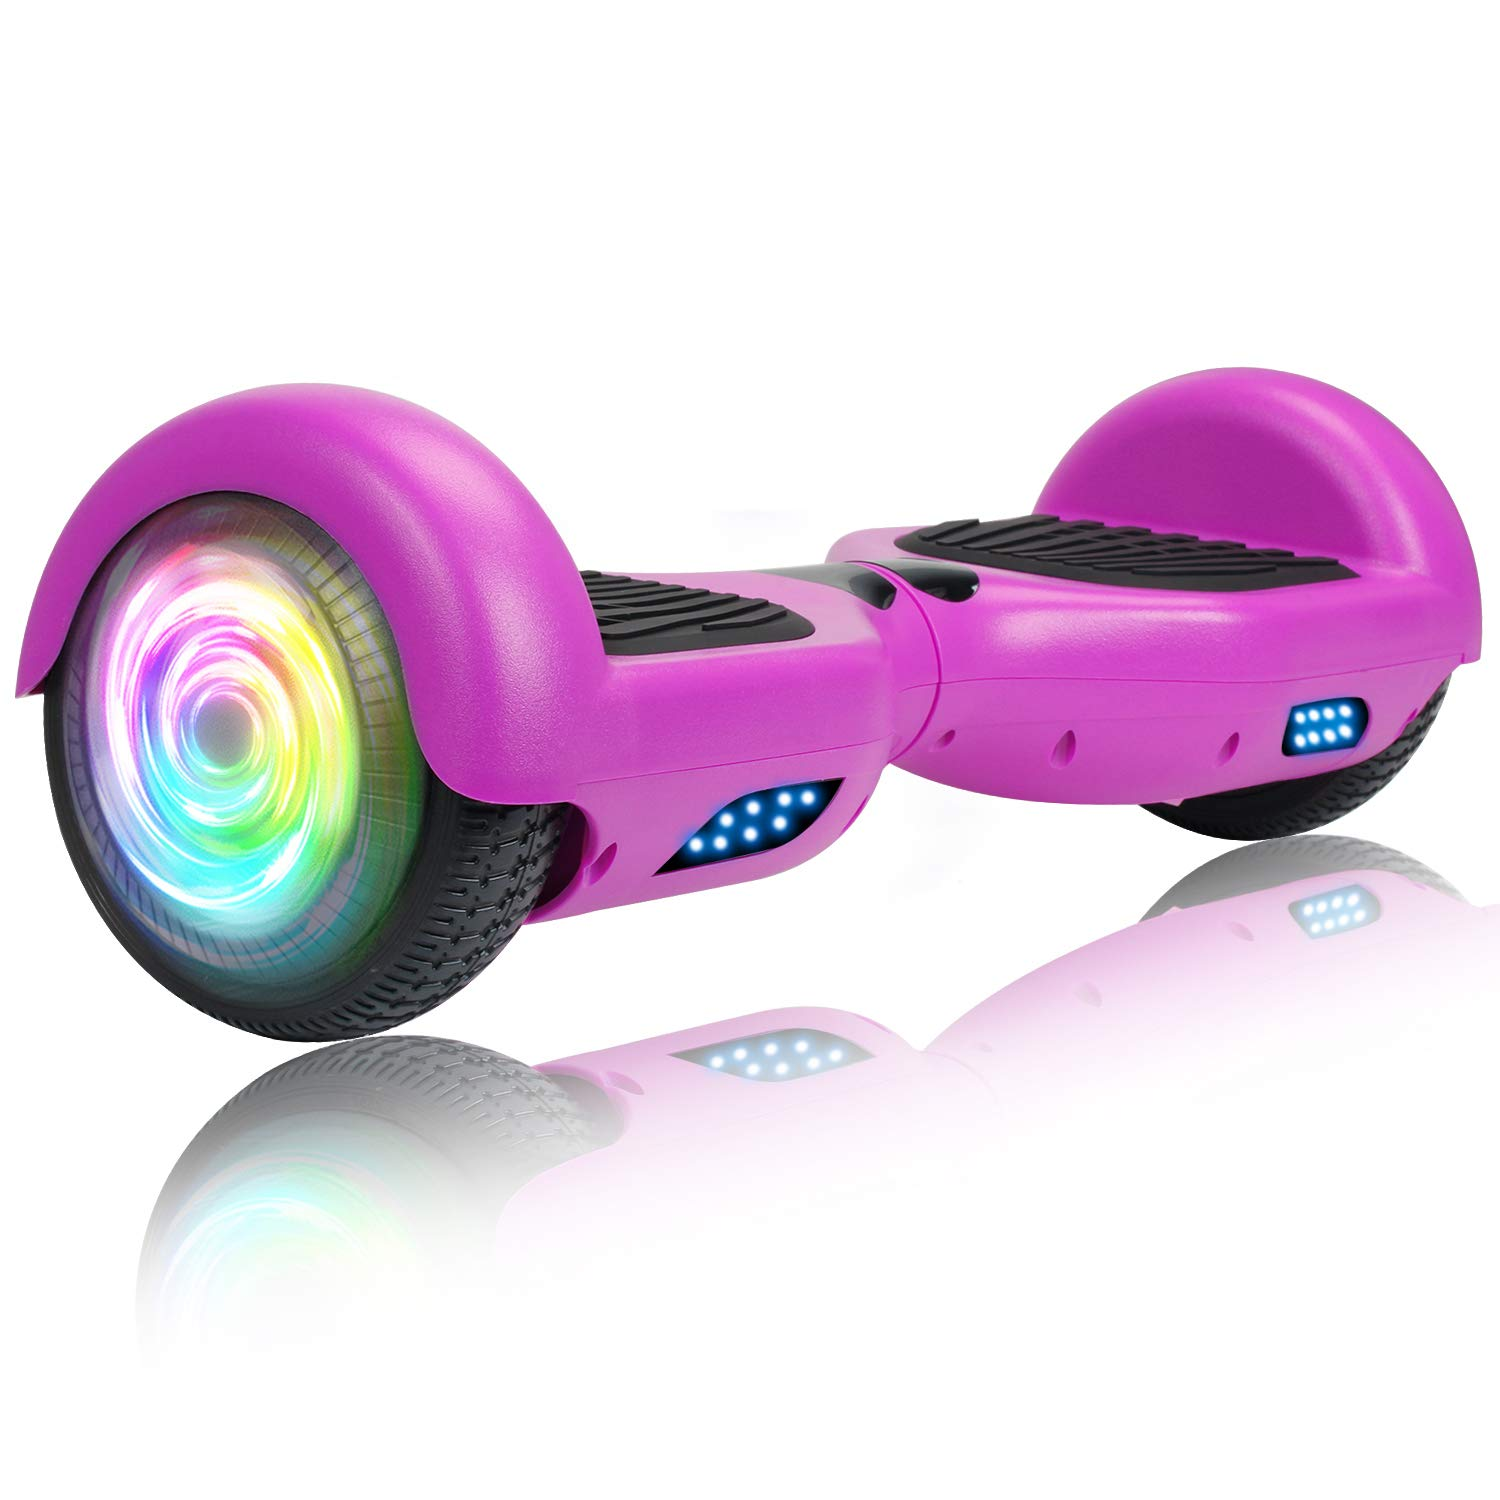 "SISIGAD Hoverboard, Self Balancing Hoverboard, 6.5"" Two-Wheel Self Balancing Scooter, Smart Hover Board for Kids Gift, Adult Electric Scooter, UL 2272 Certified - Pure Color Series (No Bluetooth)"